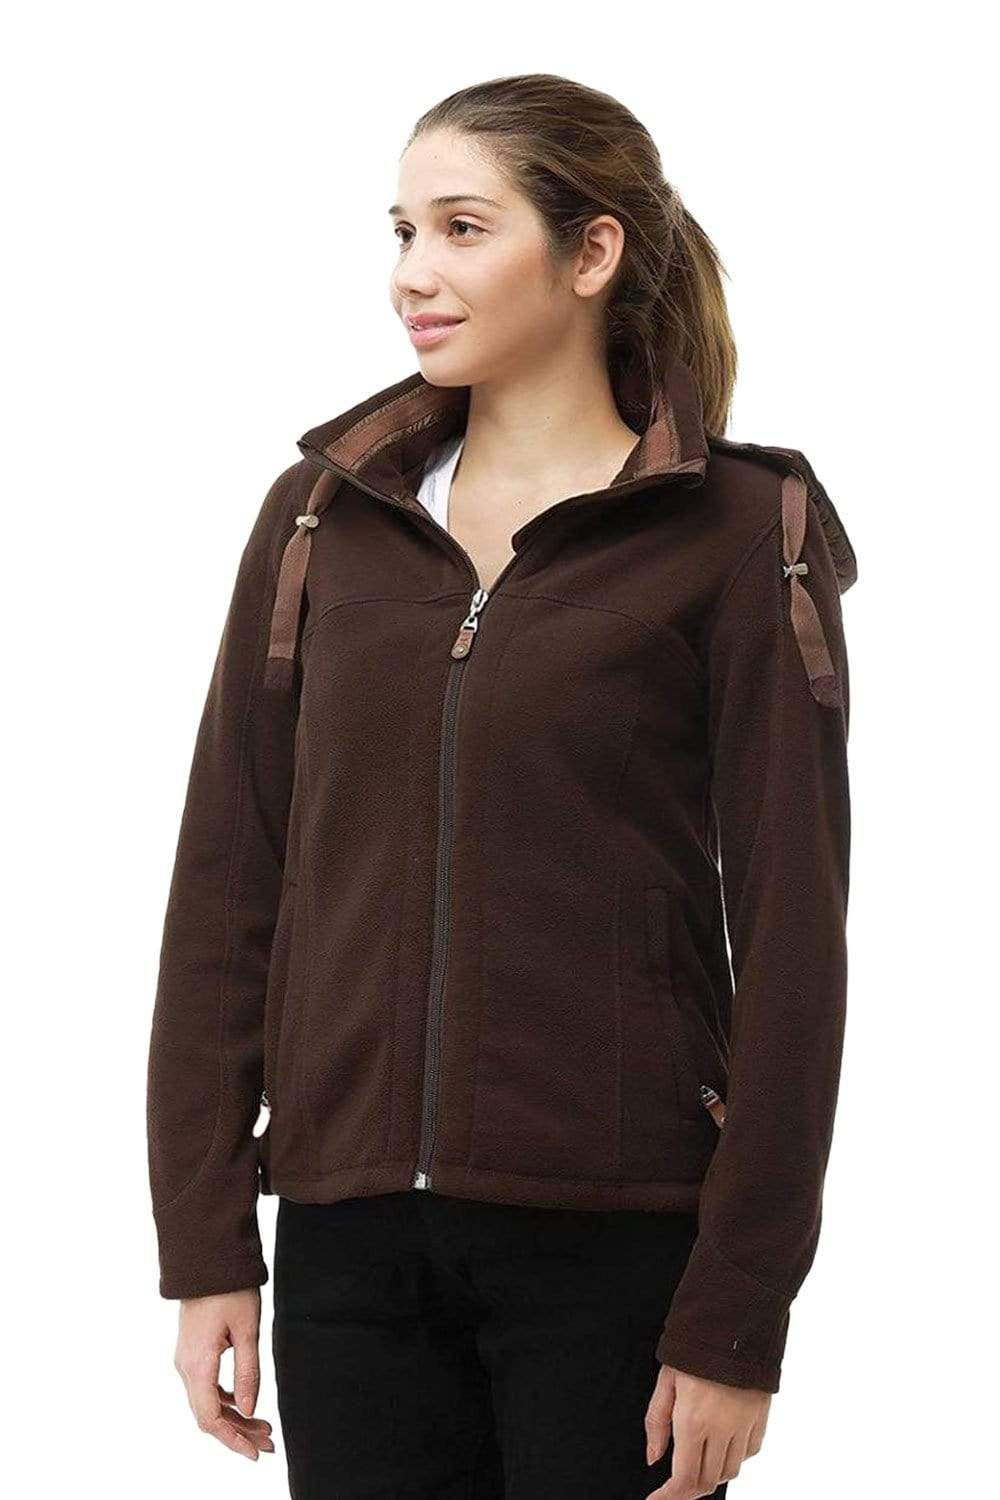 MIER Women's Heavy-Weight Polar Fleece Jacket Full Zip Thermal Outerwear with Detachable Hood jackets 8 / Saddlebrown MIER